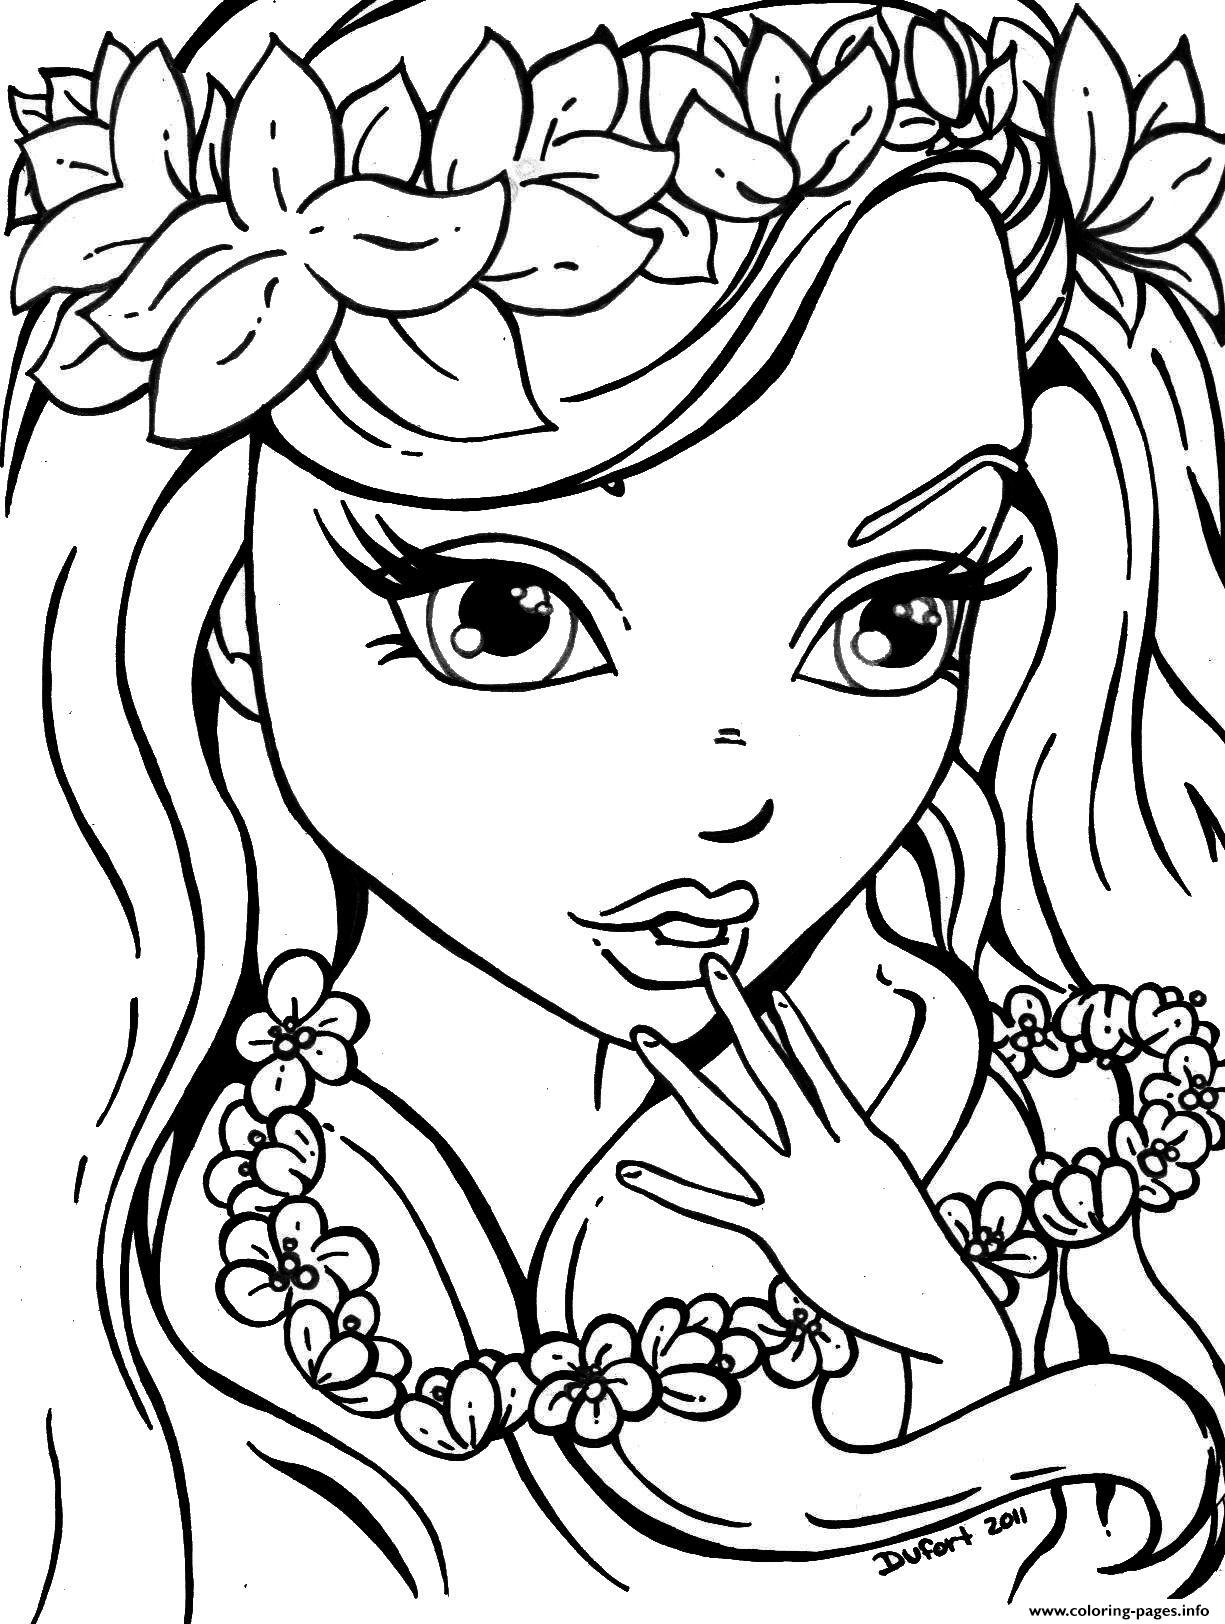 coloring pictures for teenagers coloring pages for teens best coloring pages for kids teenagers for coloring pictures